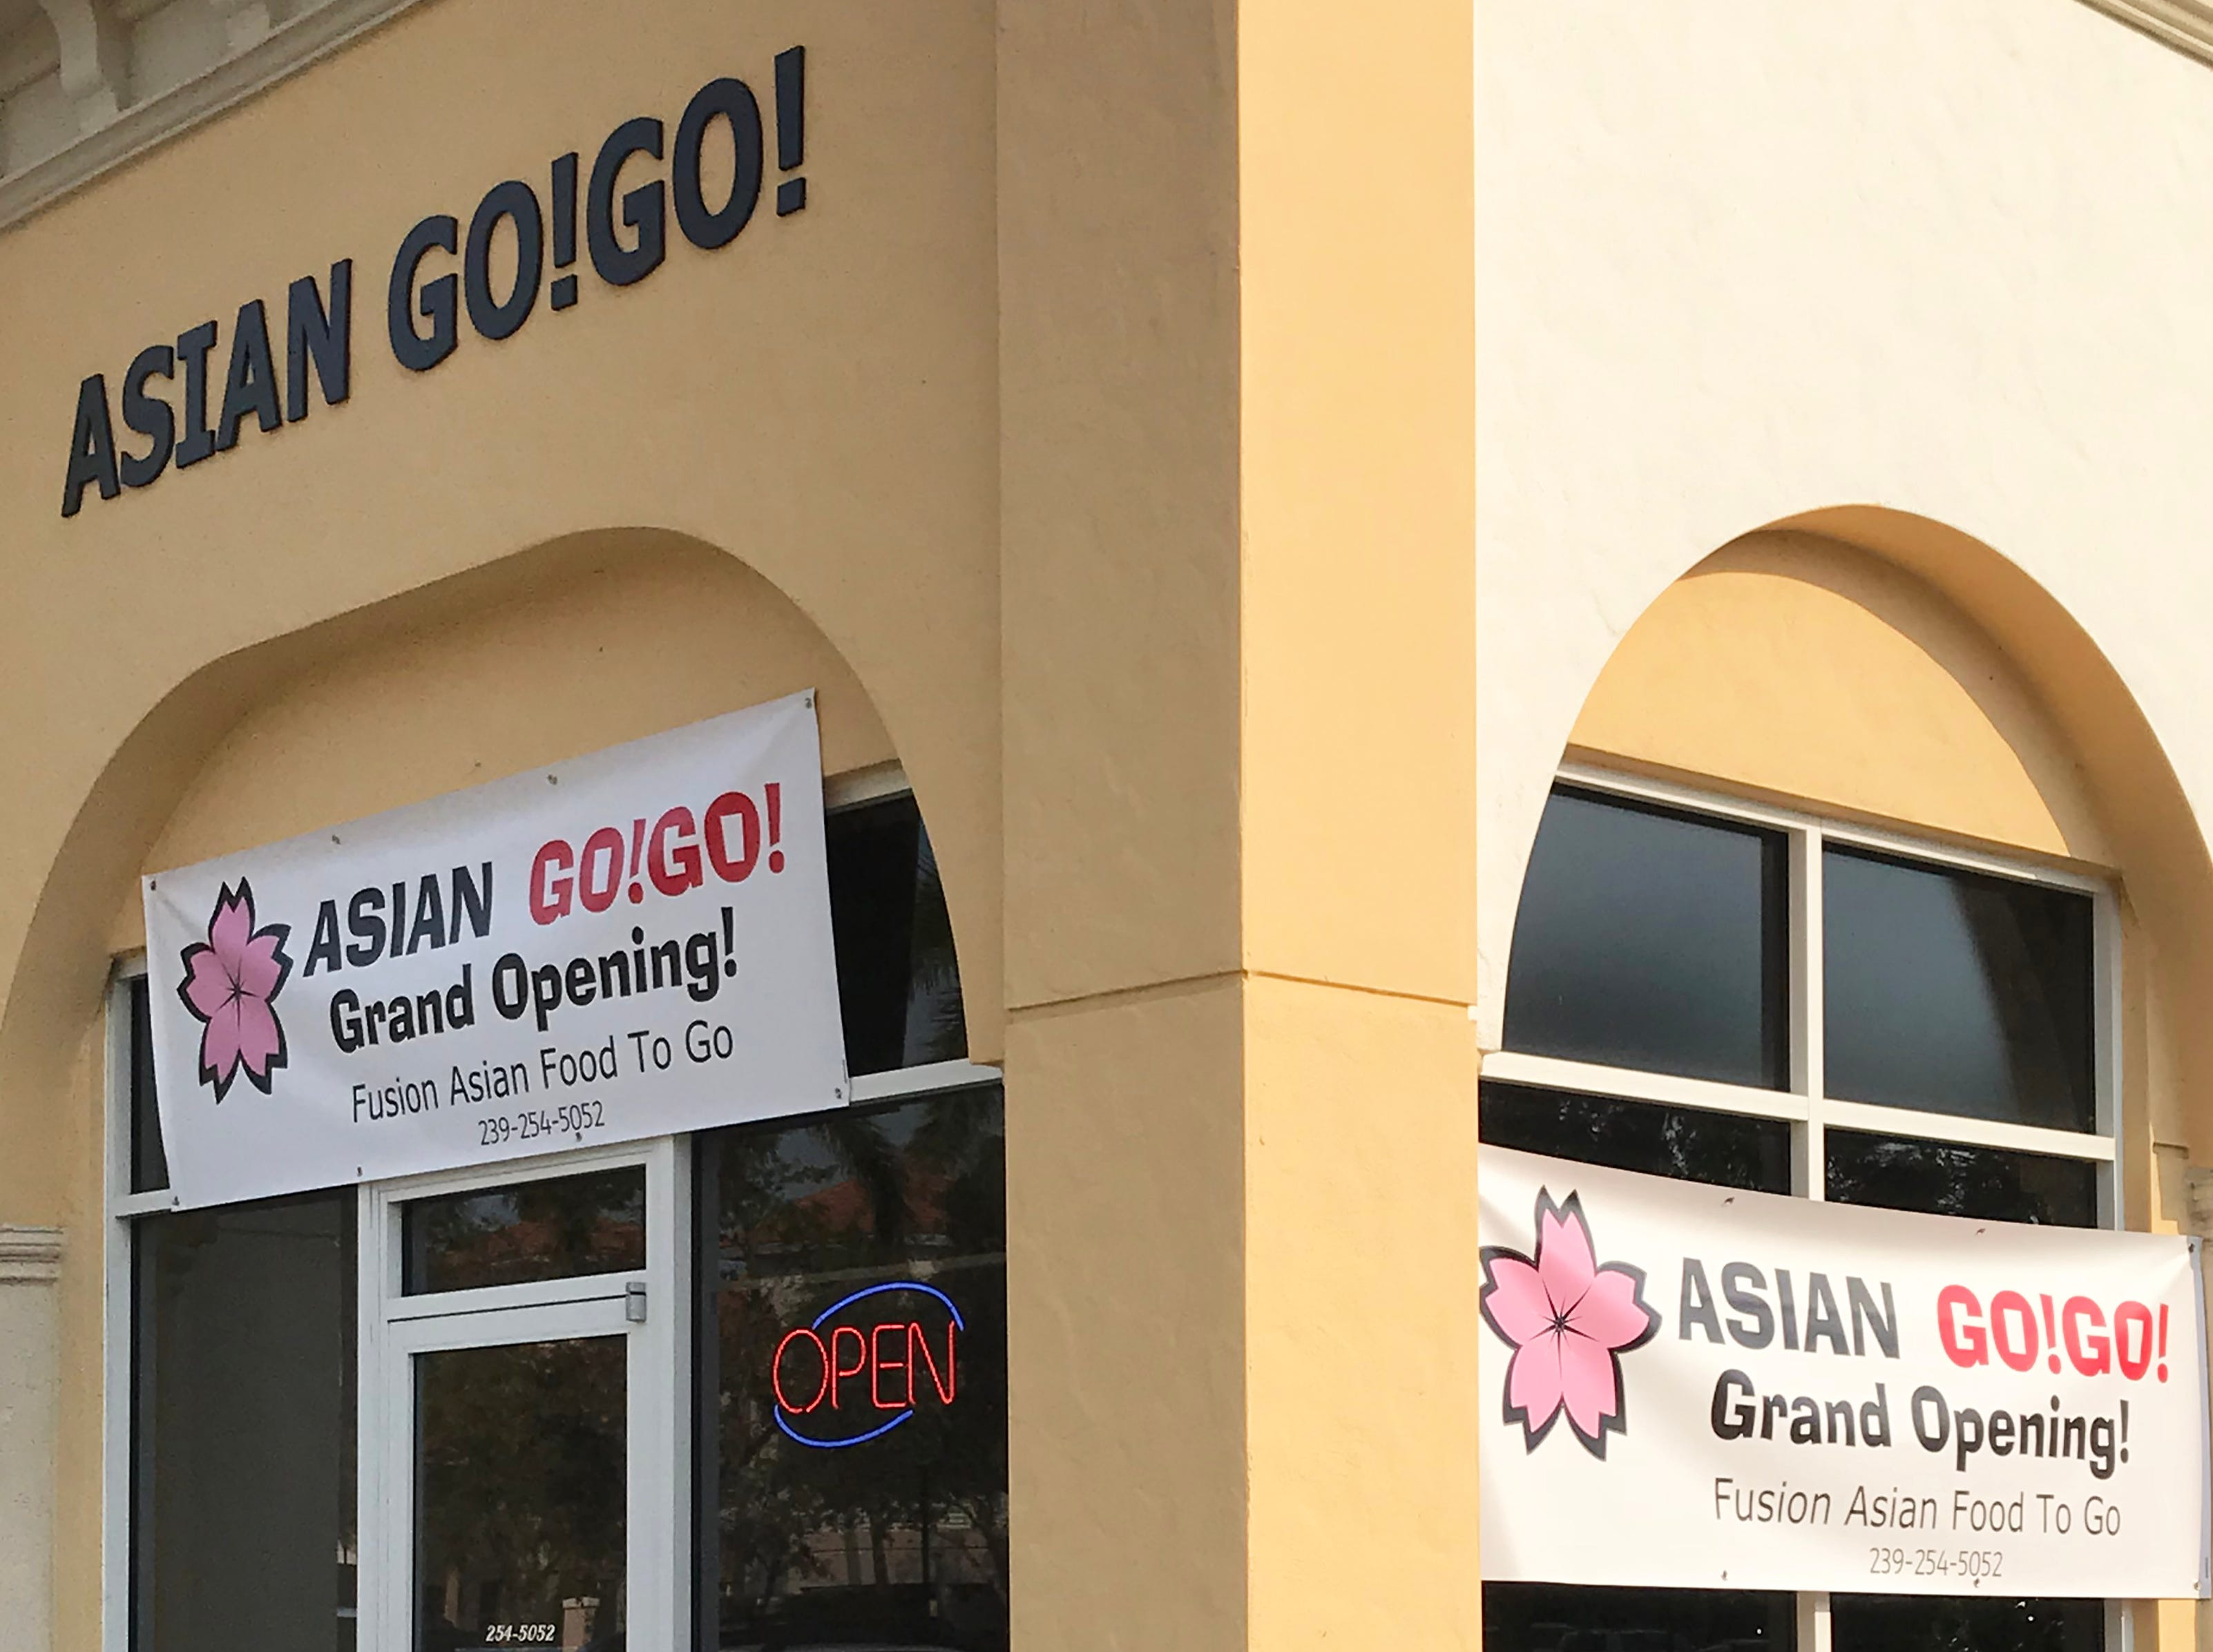 Asian Go!Go! opened in February 2018 in the Galleria Shoppes off Vanderbilt Beach Road in North Naples.